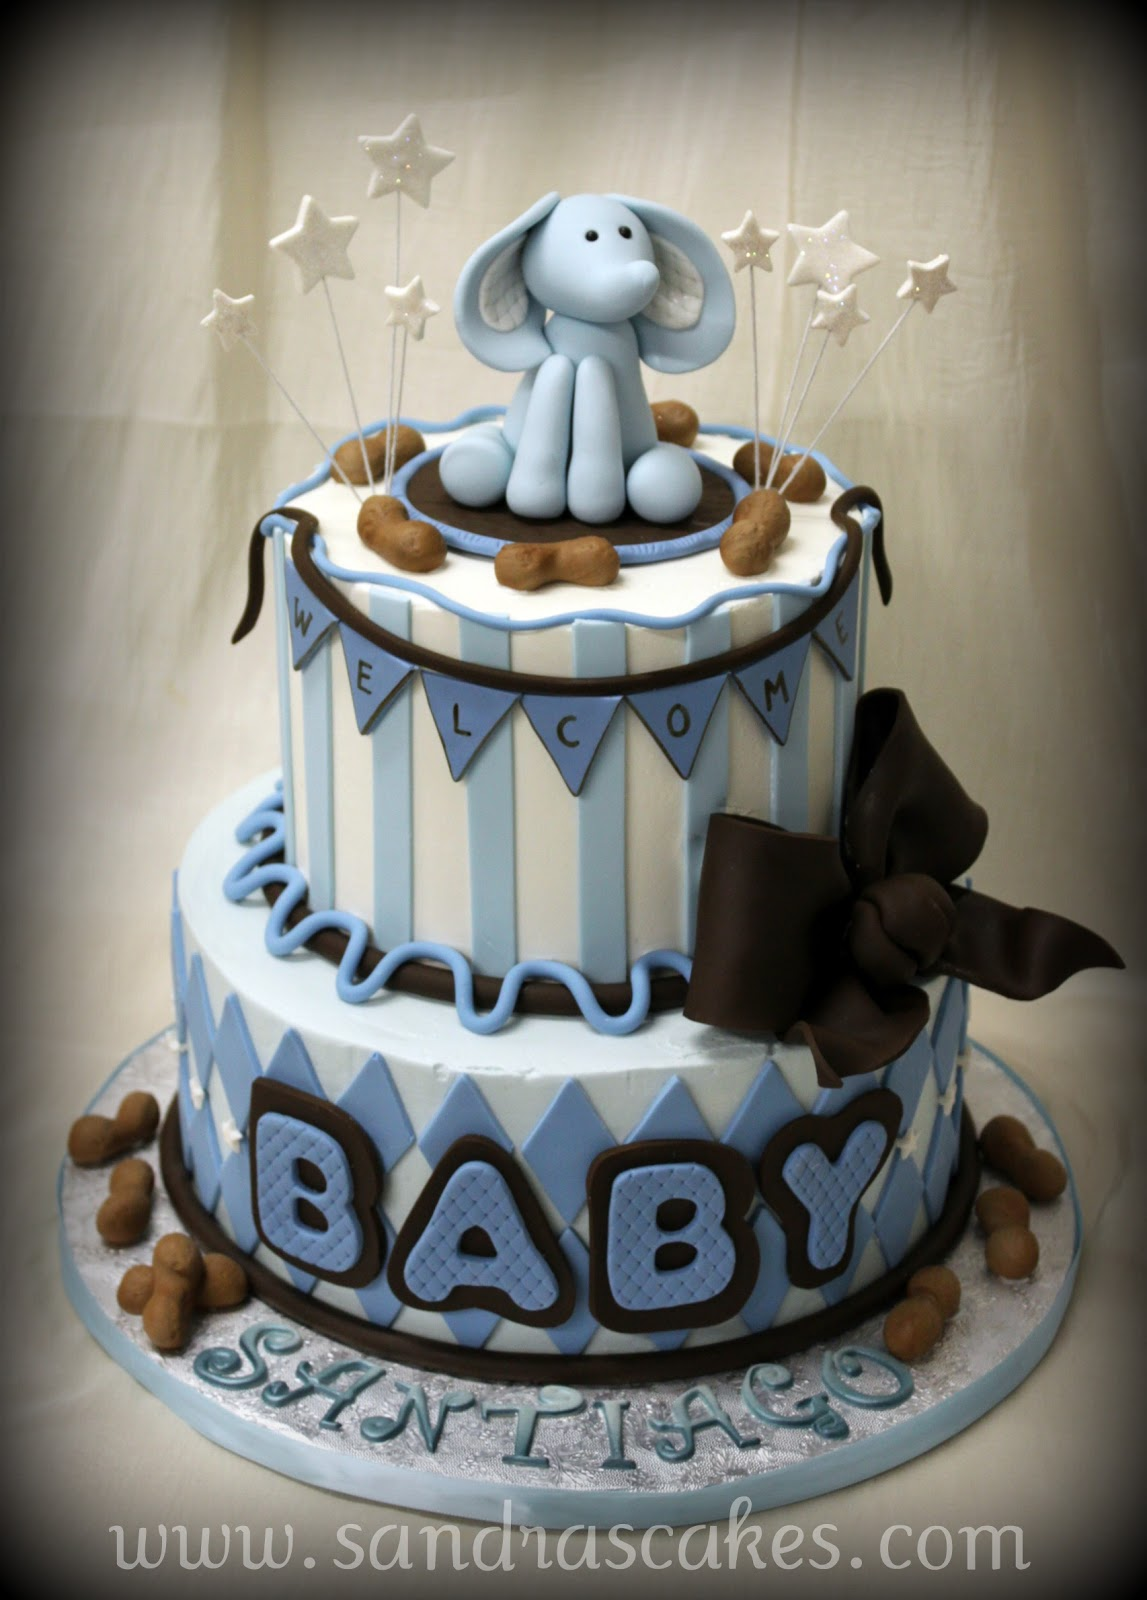 baby shower cakes. Black Bedroom Furniture Sets. Home Design Ideas